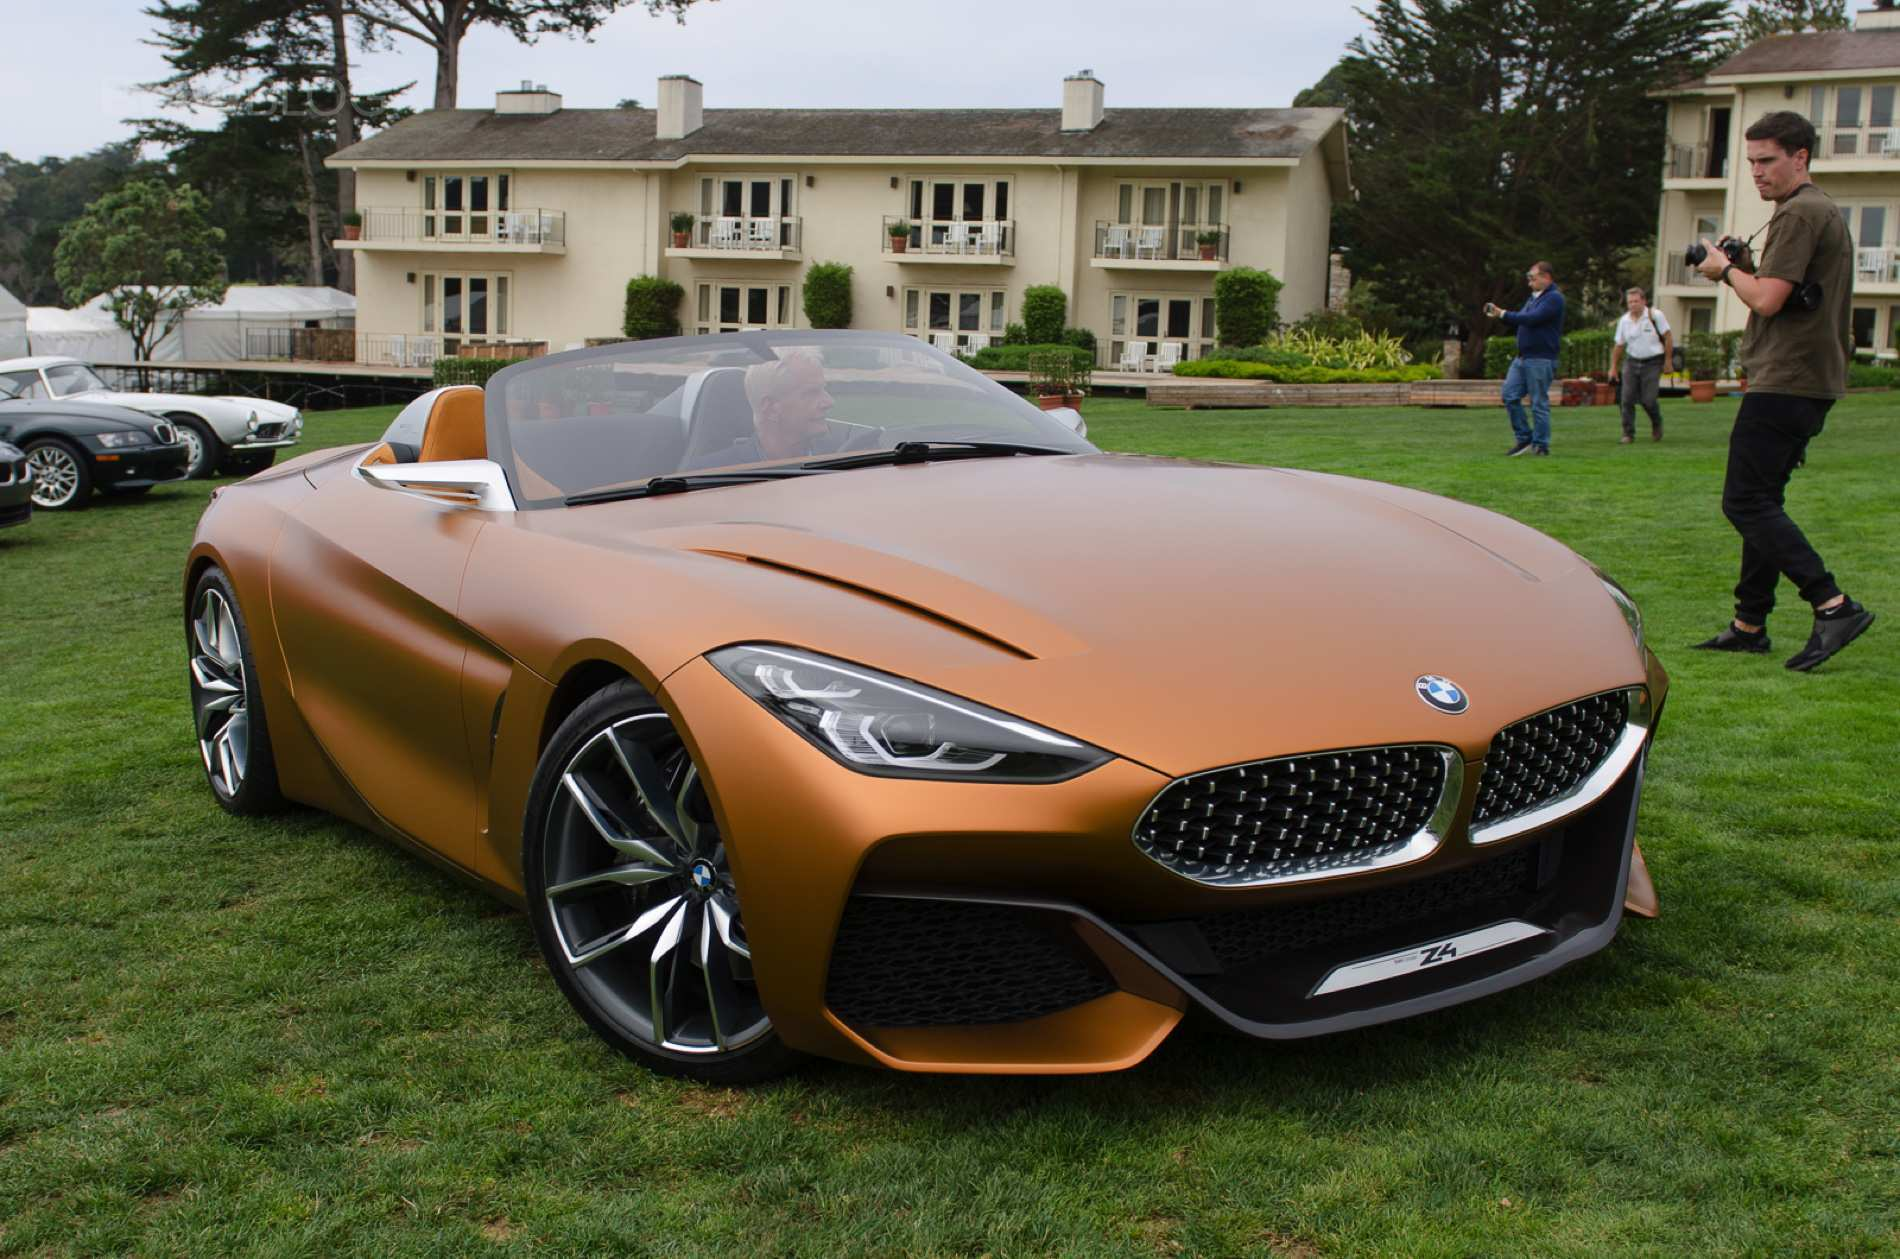 57 Concept of 2019 Bmw Z4 Concept Style by 2019 Bmw Z4 Concept